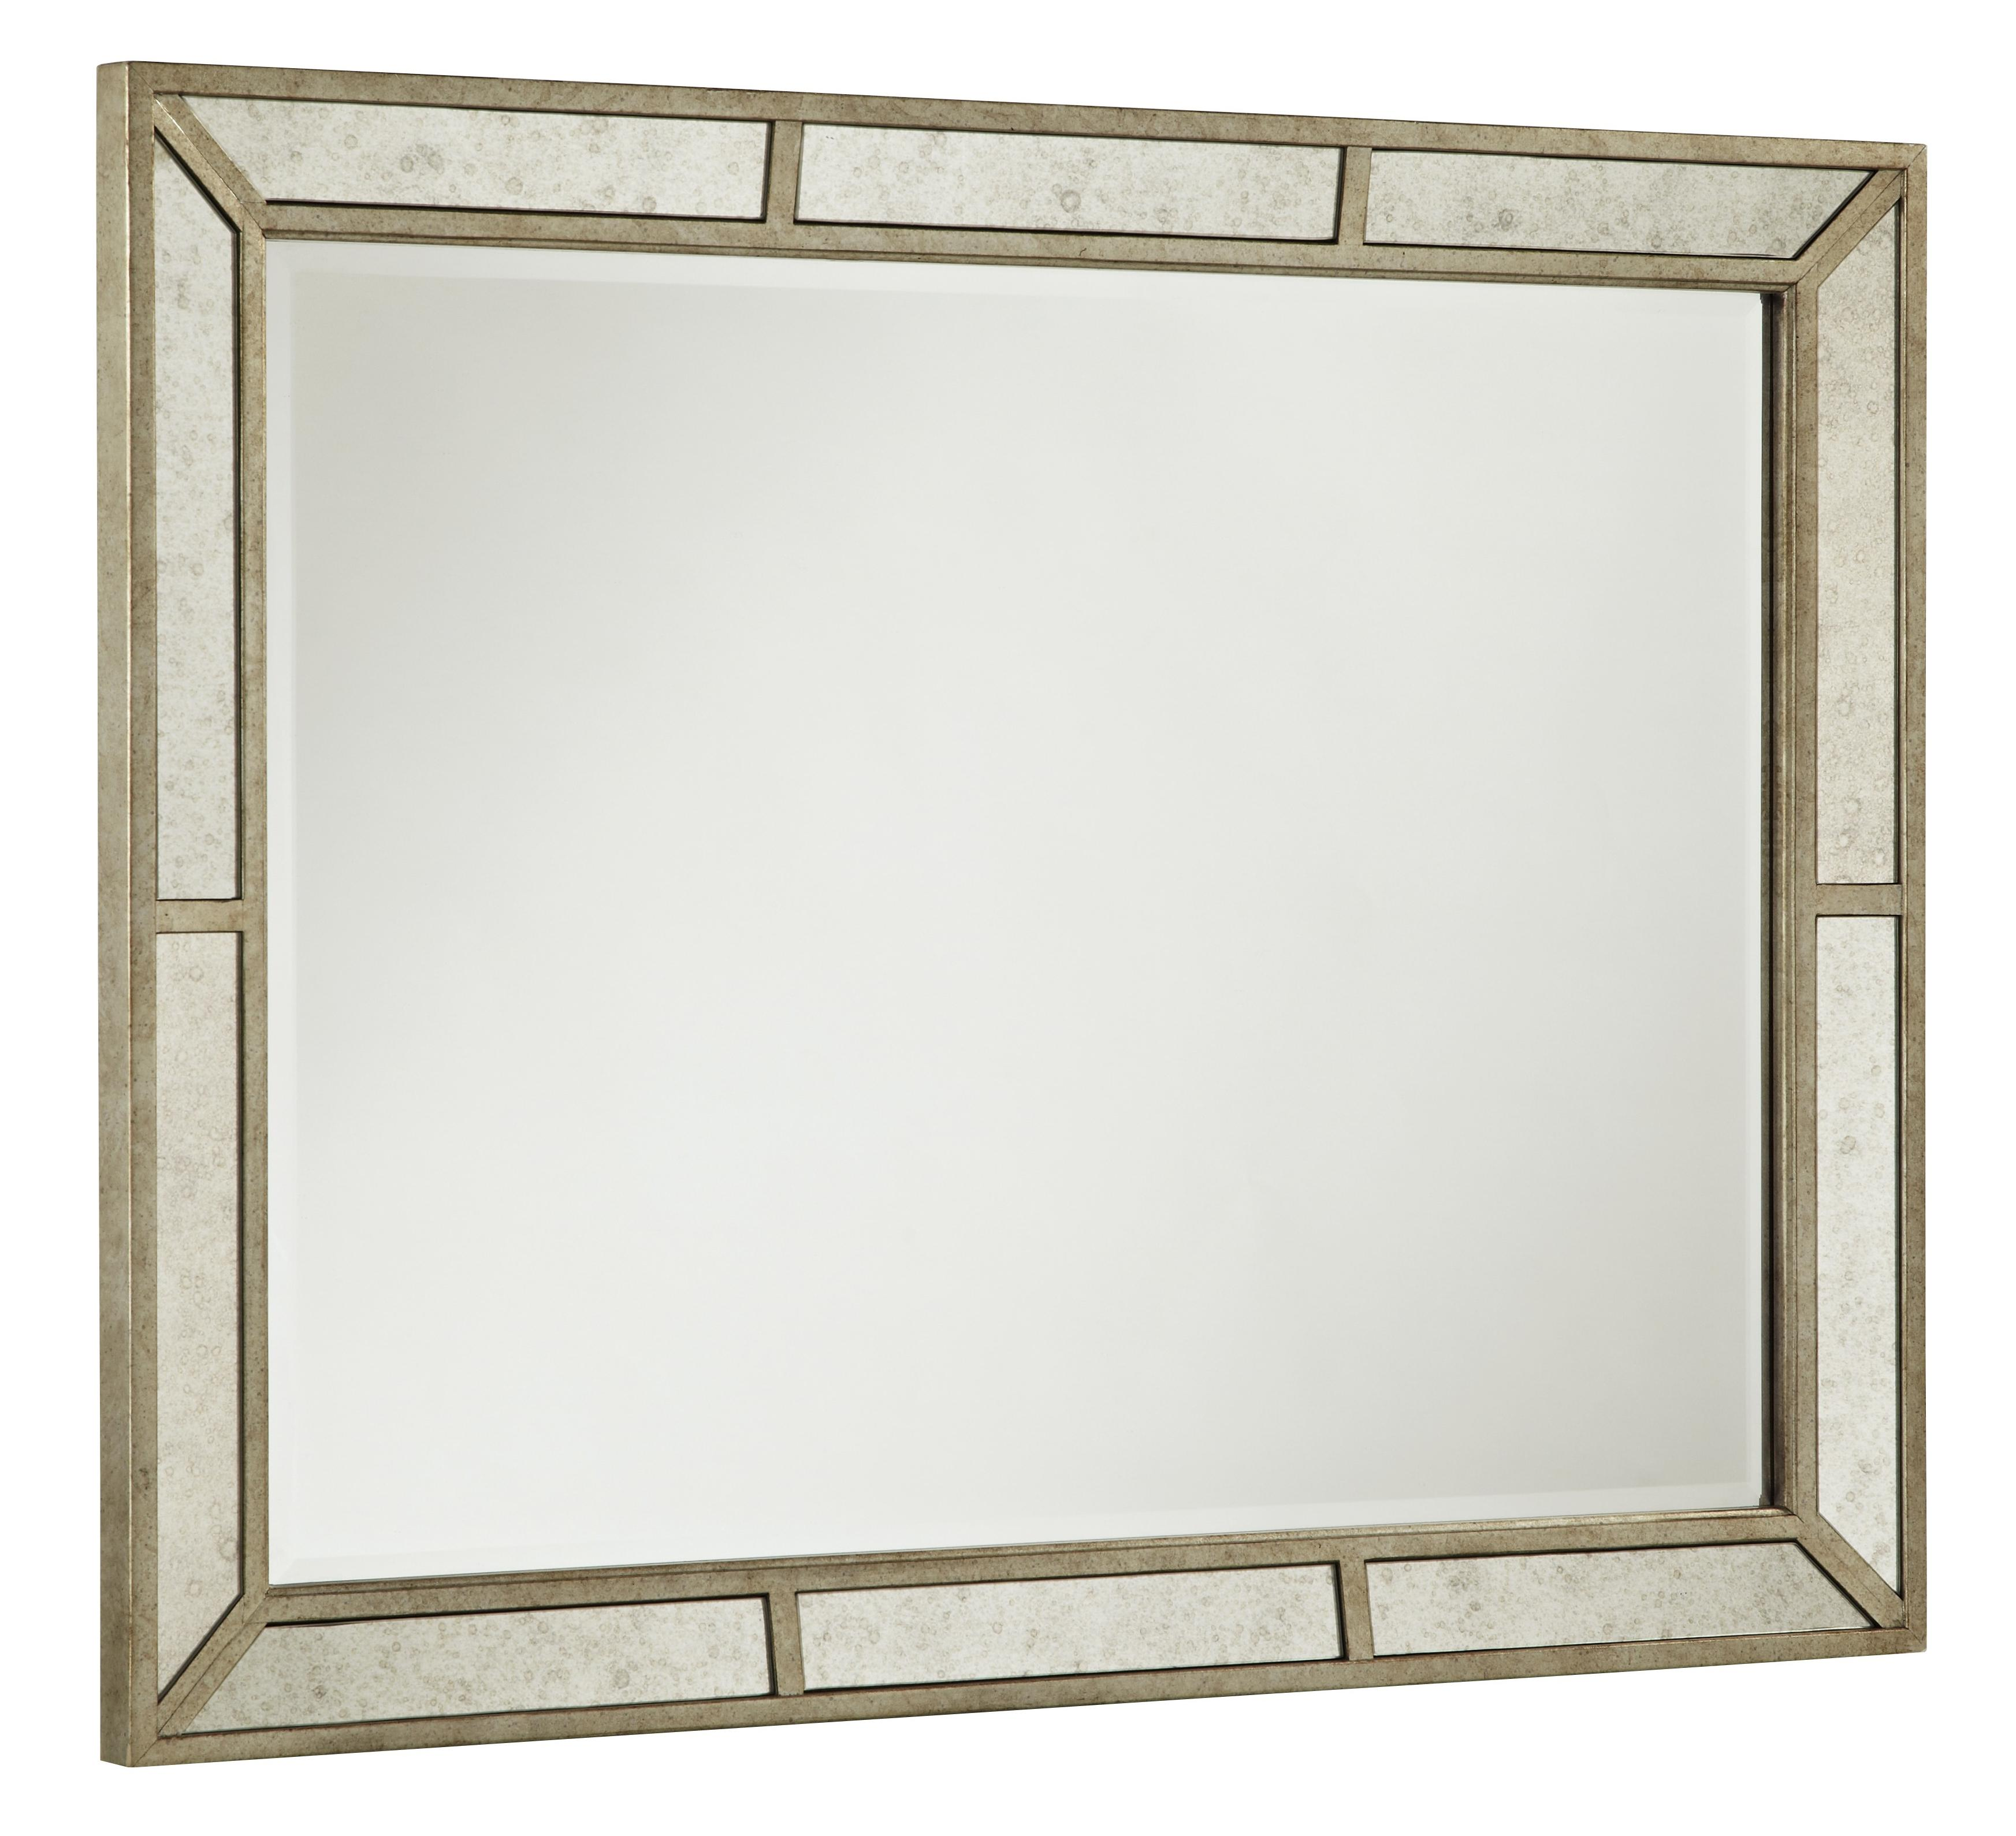 antique mirror frame wood wall mirror w antiqued frame by pulaski furniture wolf and